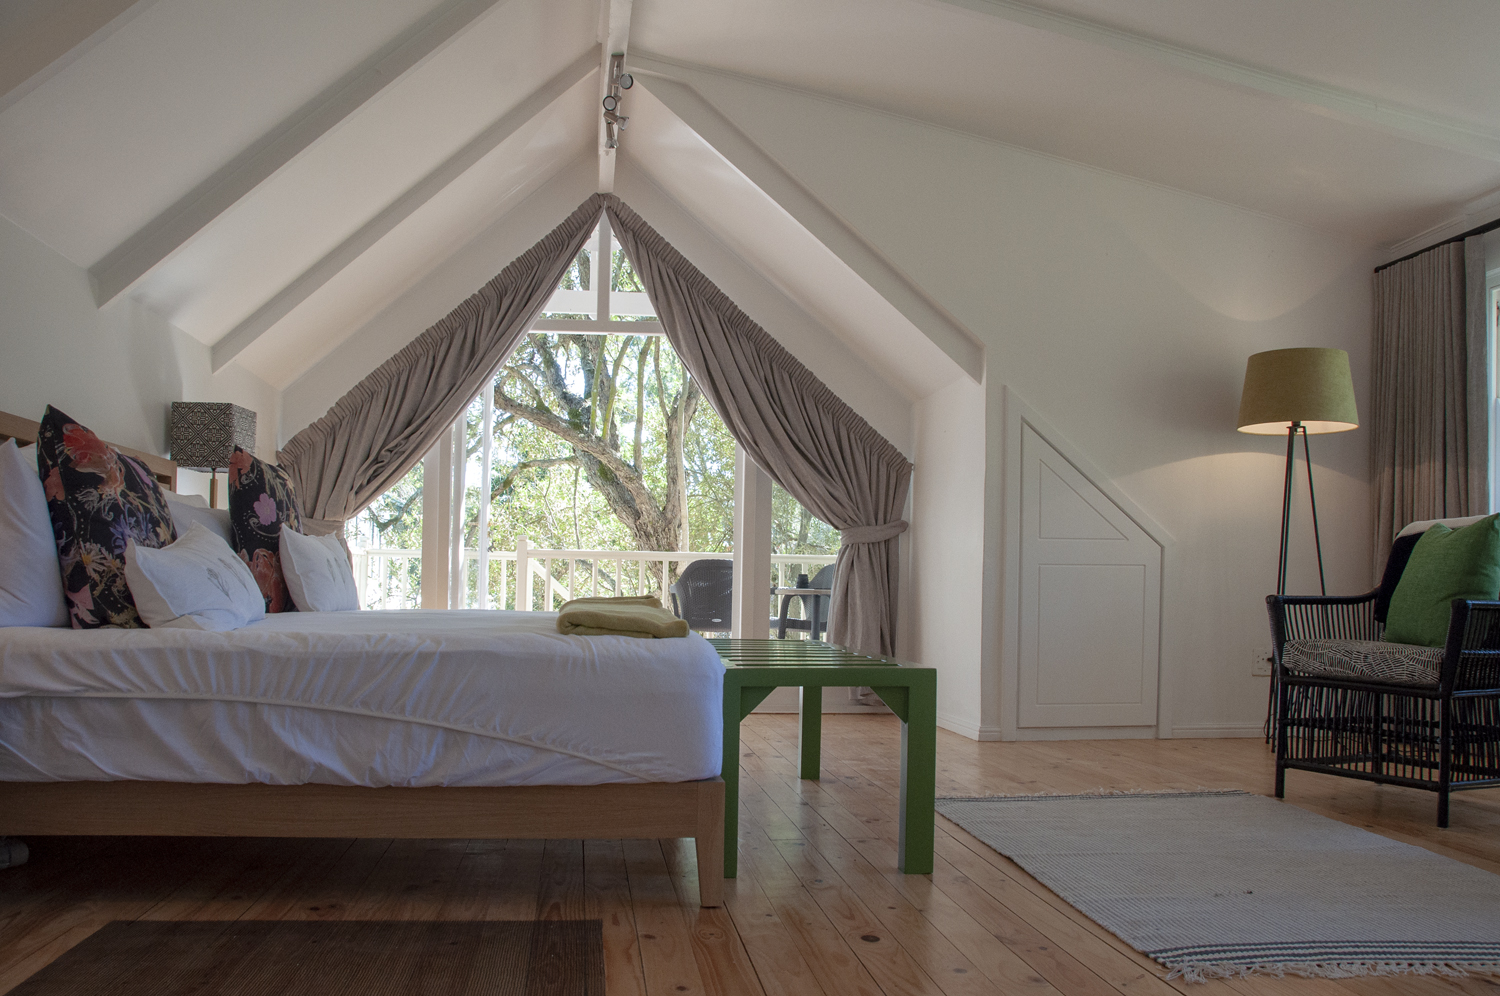 Self-catering farm stay in the Cape WInelands near Riebeek and Cape Town